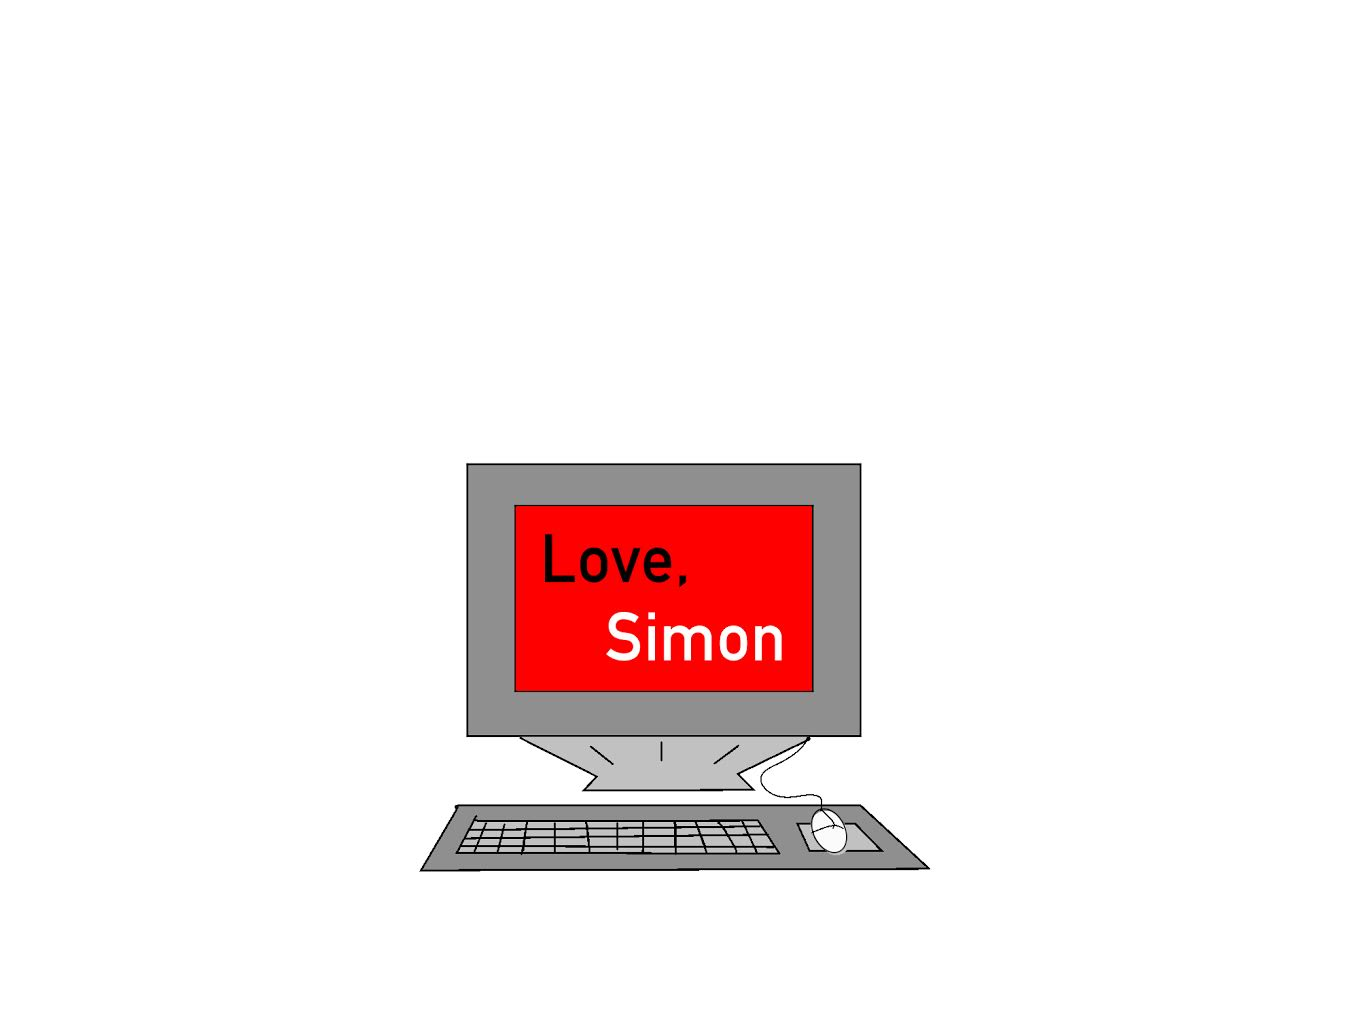 Lovesimon.rebeccaenright